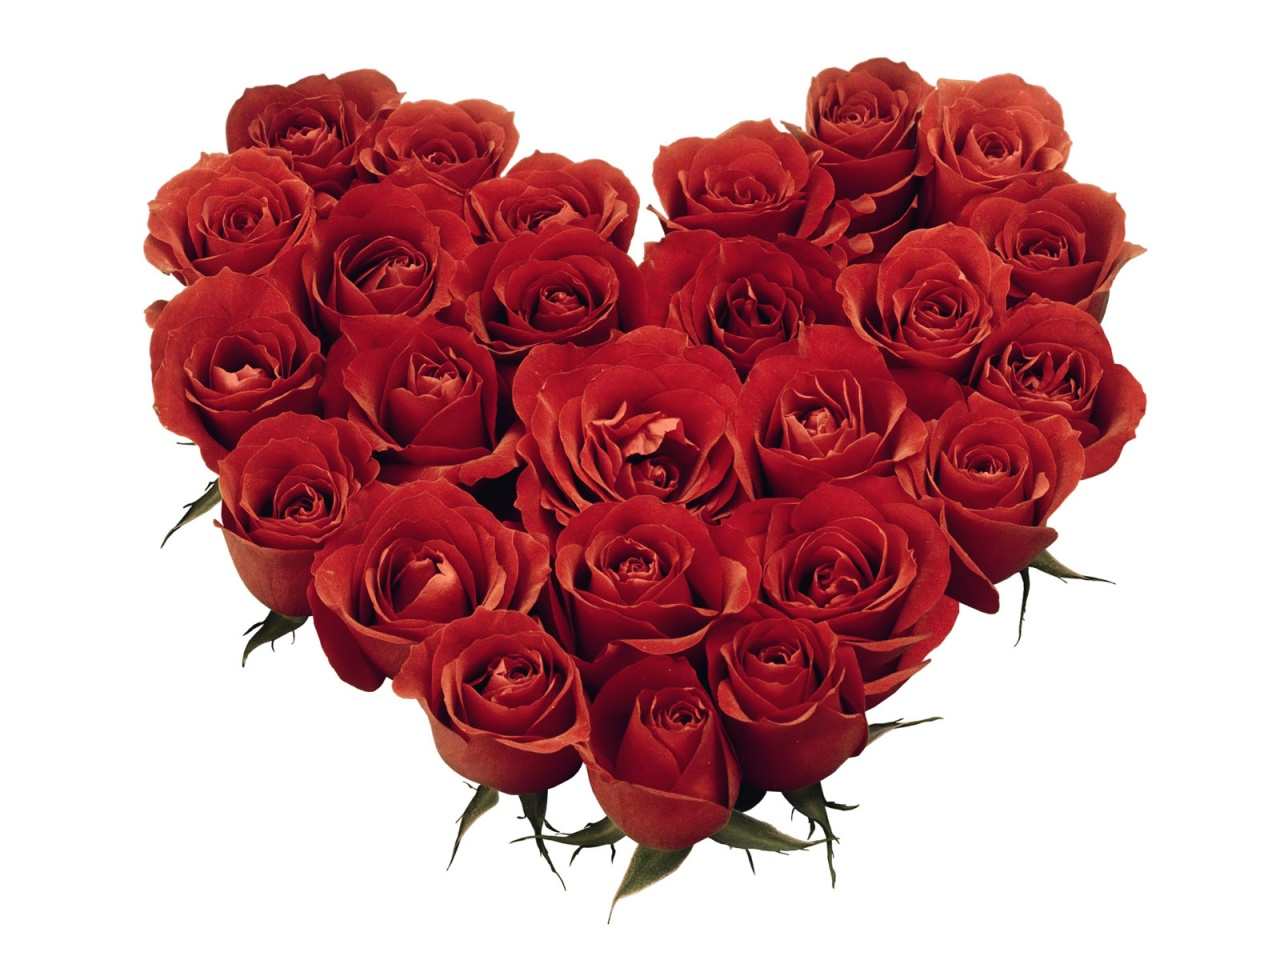 1280x720 Red Roses Heart